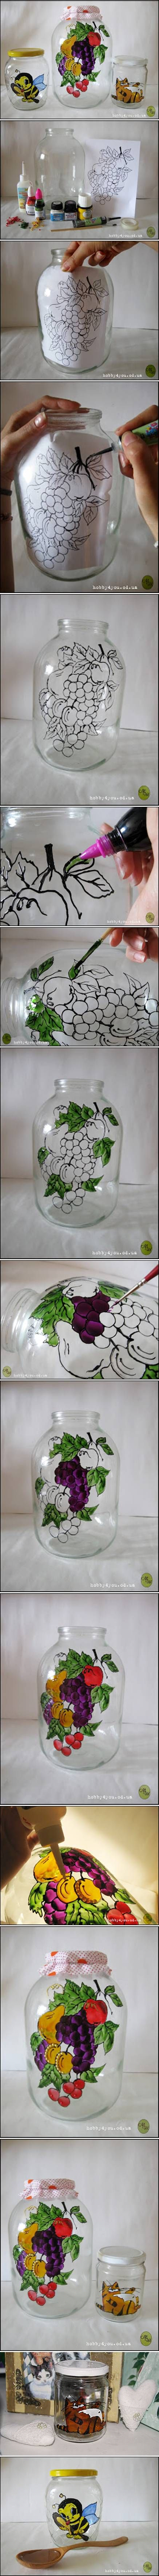 DIY Jar Painting